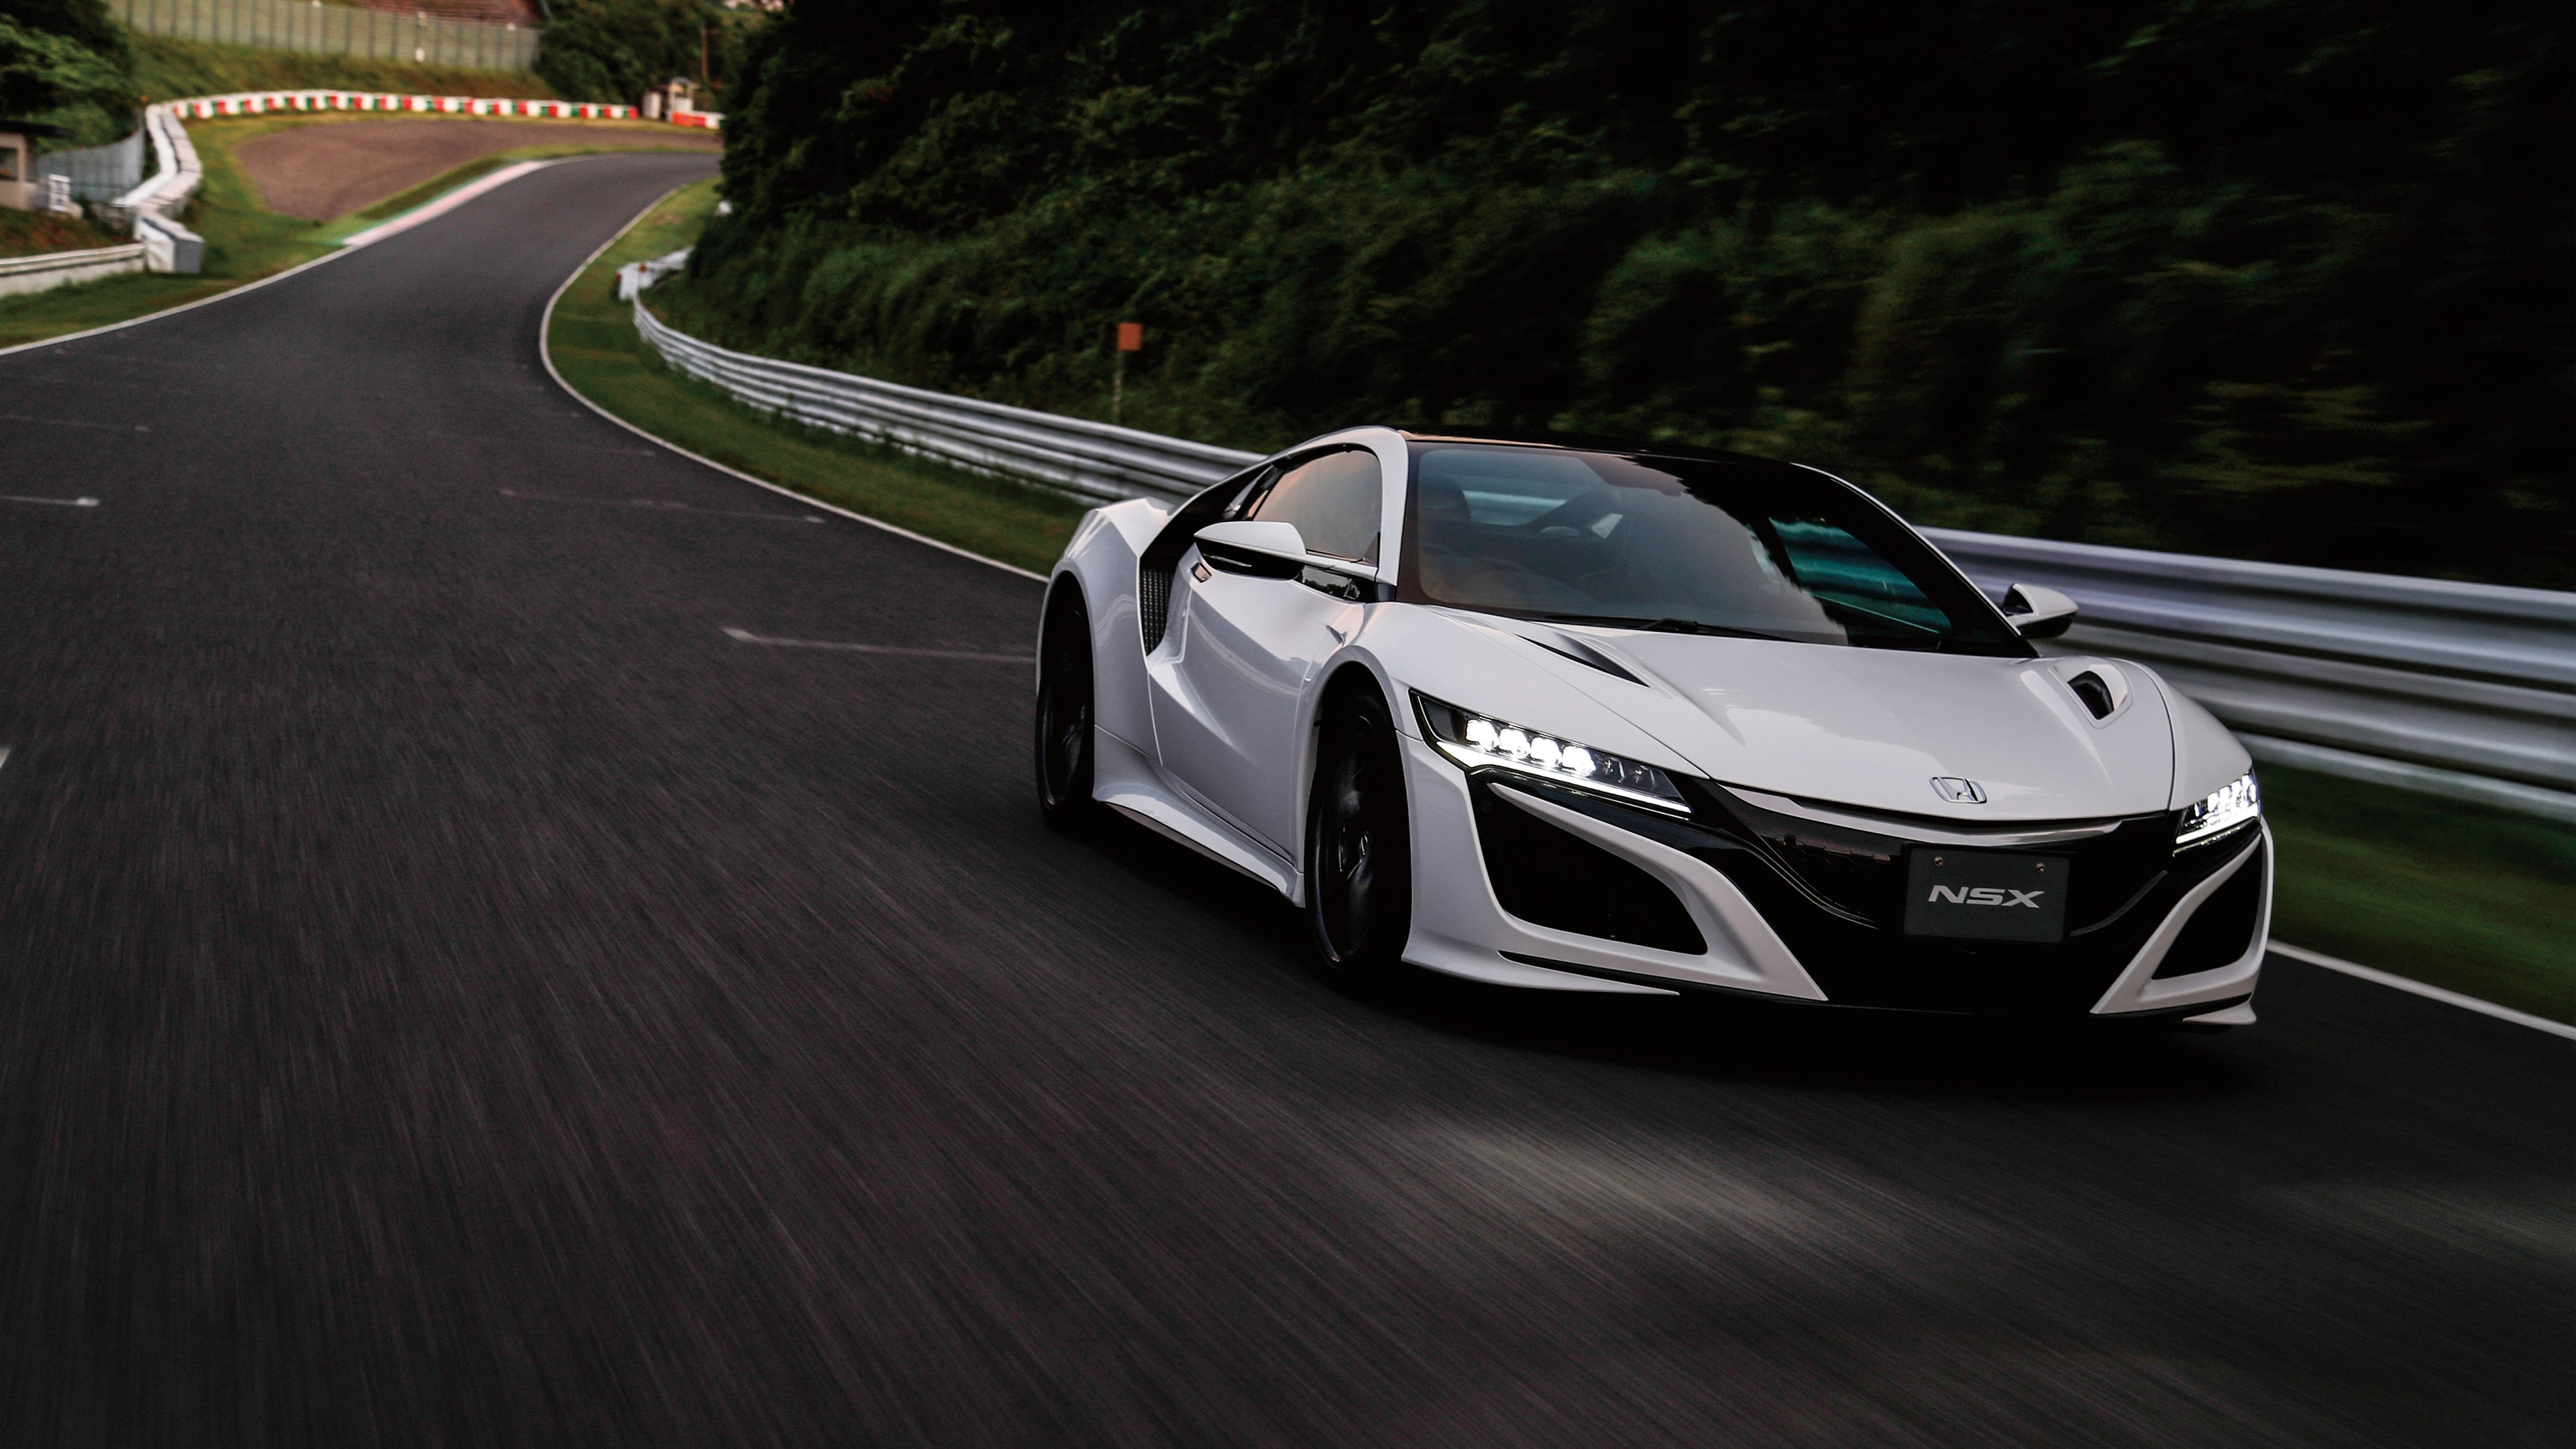 Honda nsx 4k supercar wallpaper hd car wallpapers id 6985 - Wallpaper hd 4k car ...